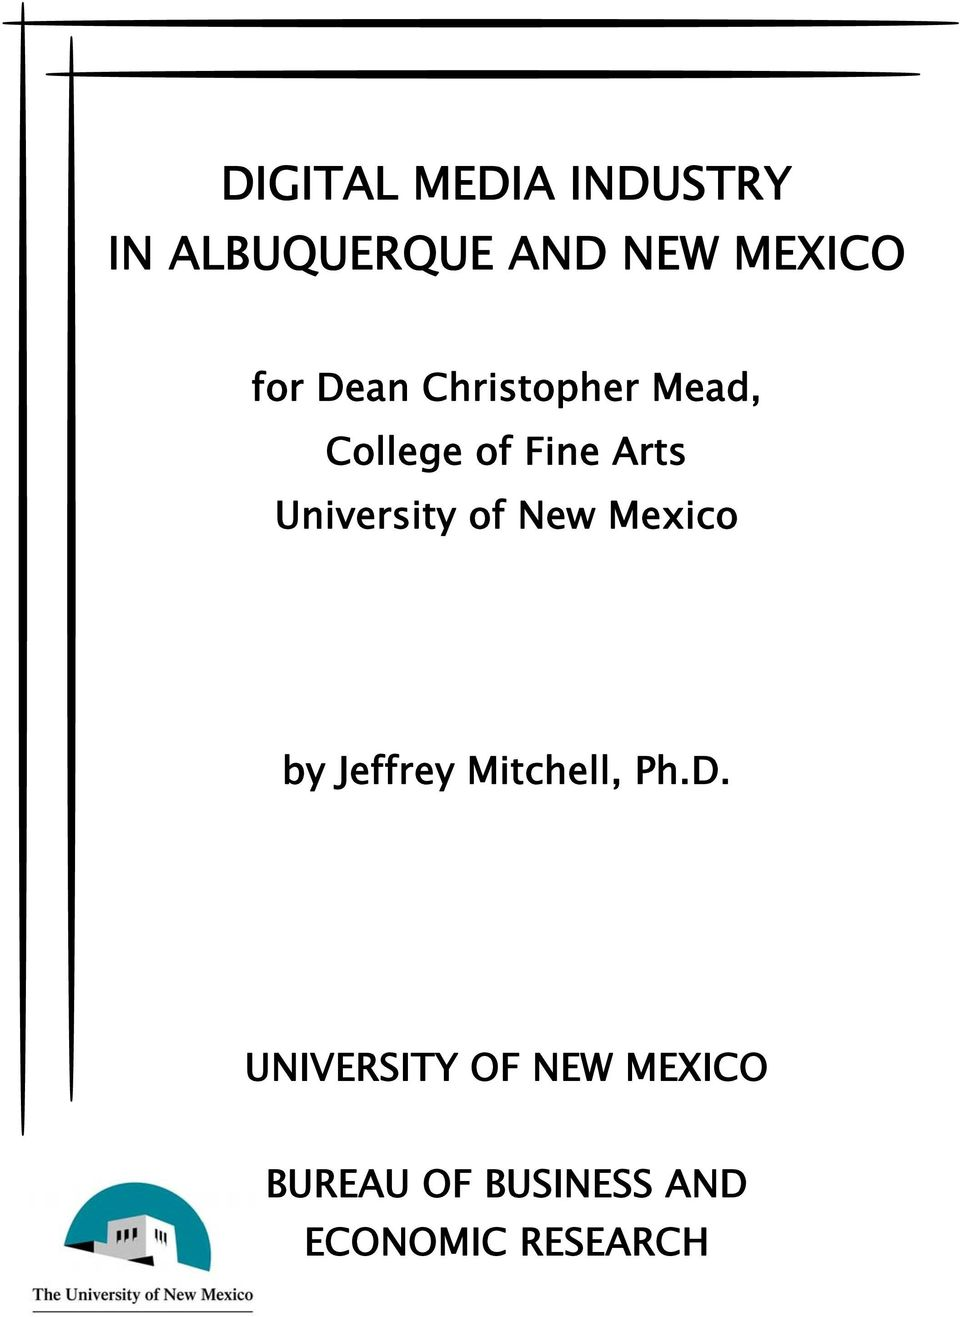 University of New Mexico by Jeffrey Mitchell, Ph.D.